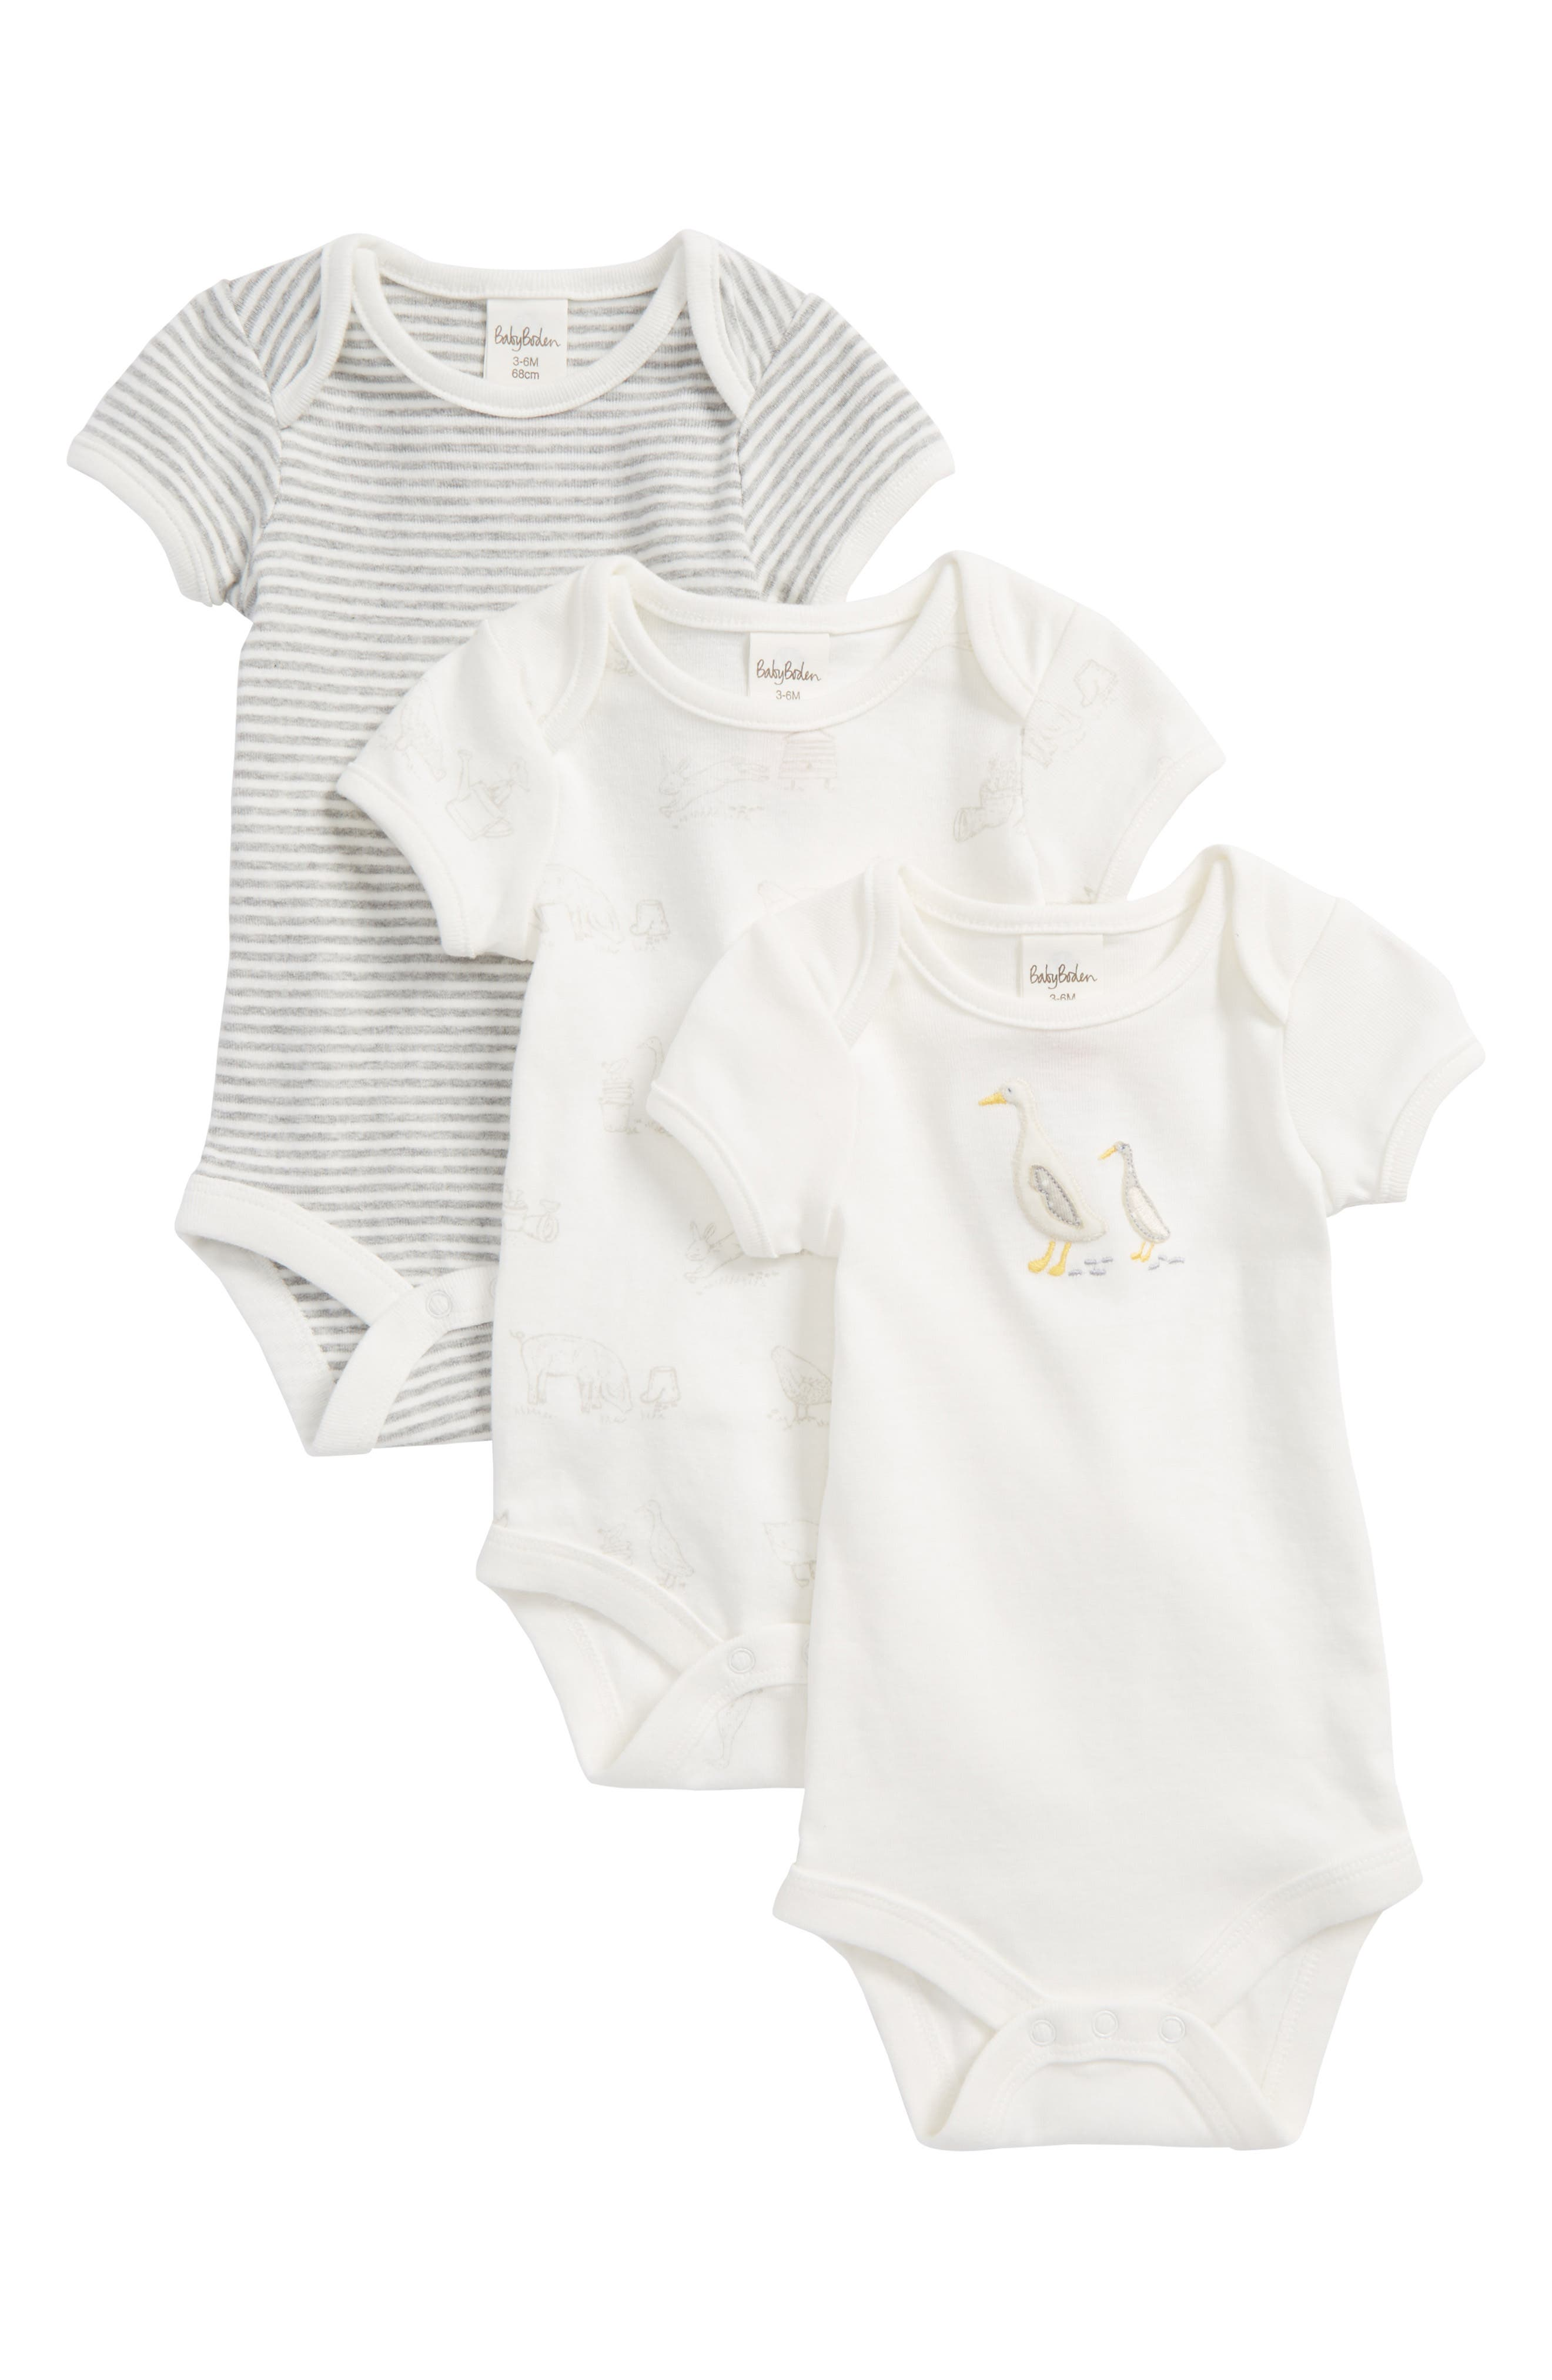 Mini Boden 3-Pack Bodysuits (Baby & Toddler)